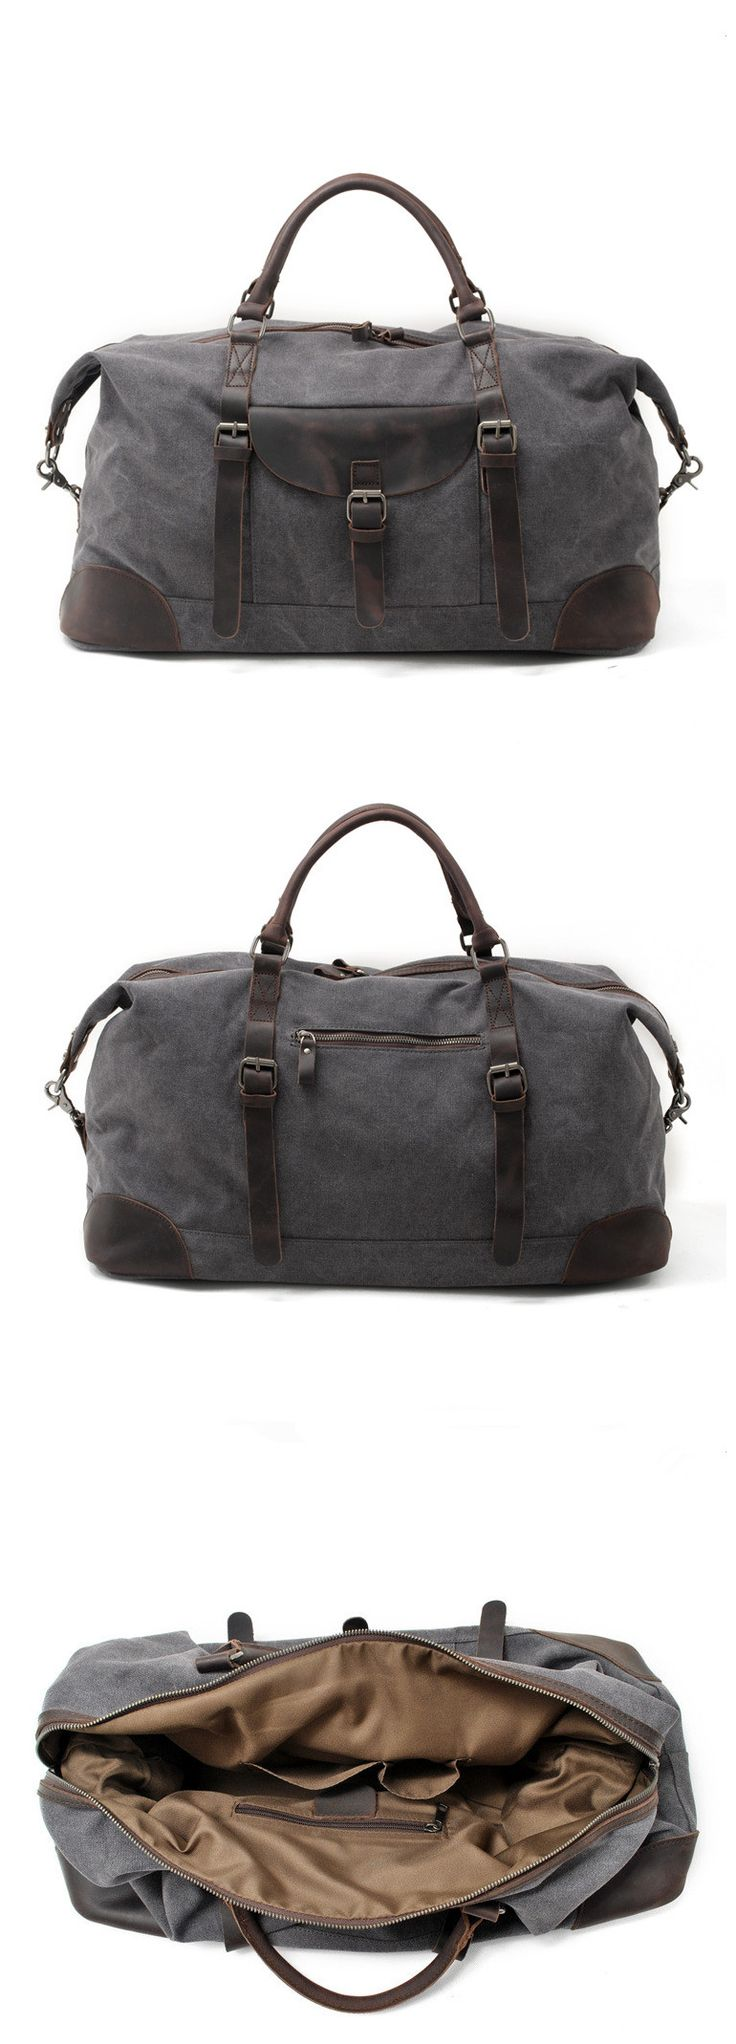 Waxed Canvas Travel Duffle Bag Holdall Luggage Overnight Bag We use selected thick genuine cow leather, quality canvas material, anti-rust hardware and nylon fabric to make the bag as good as it is. T